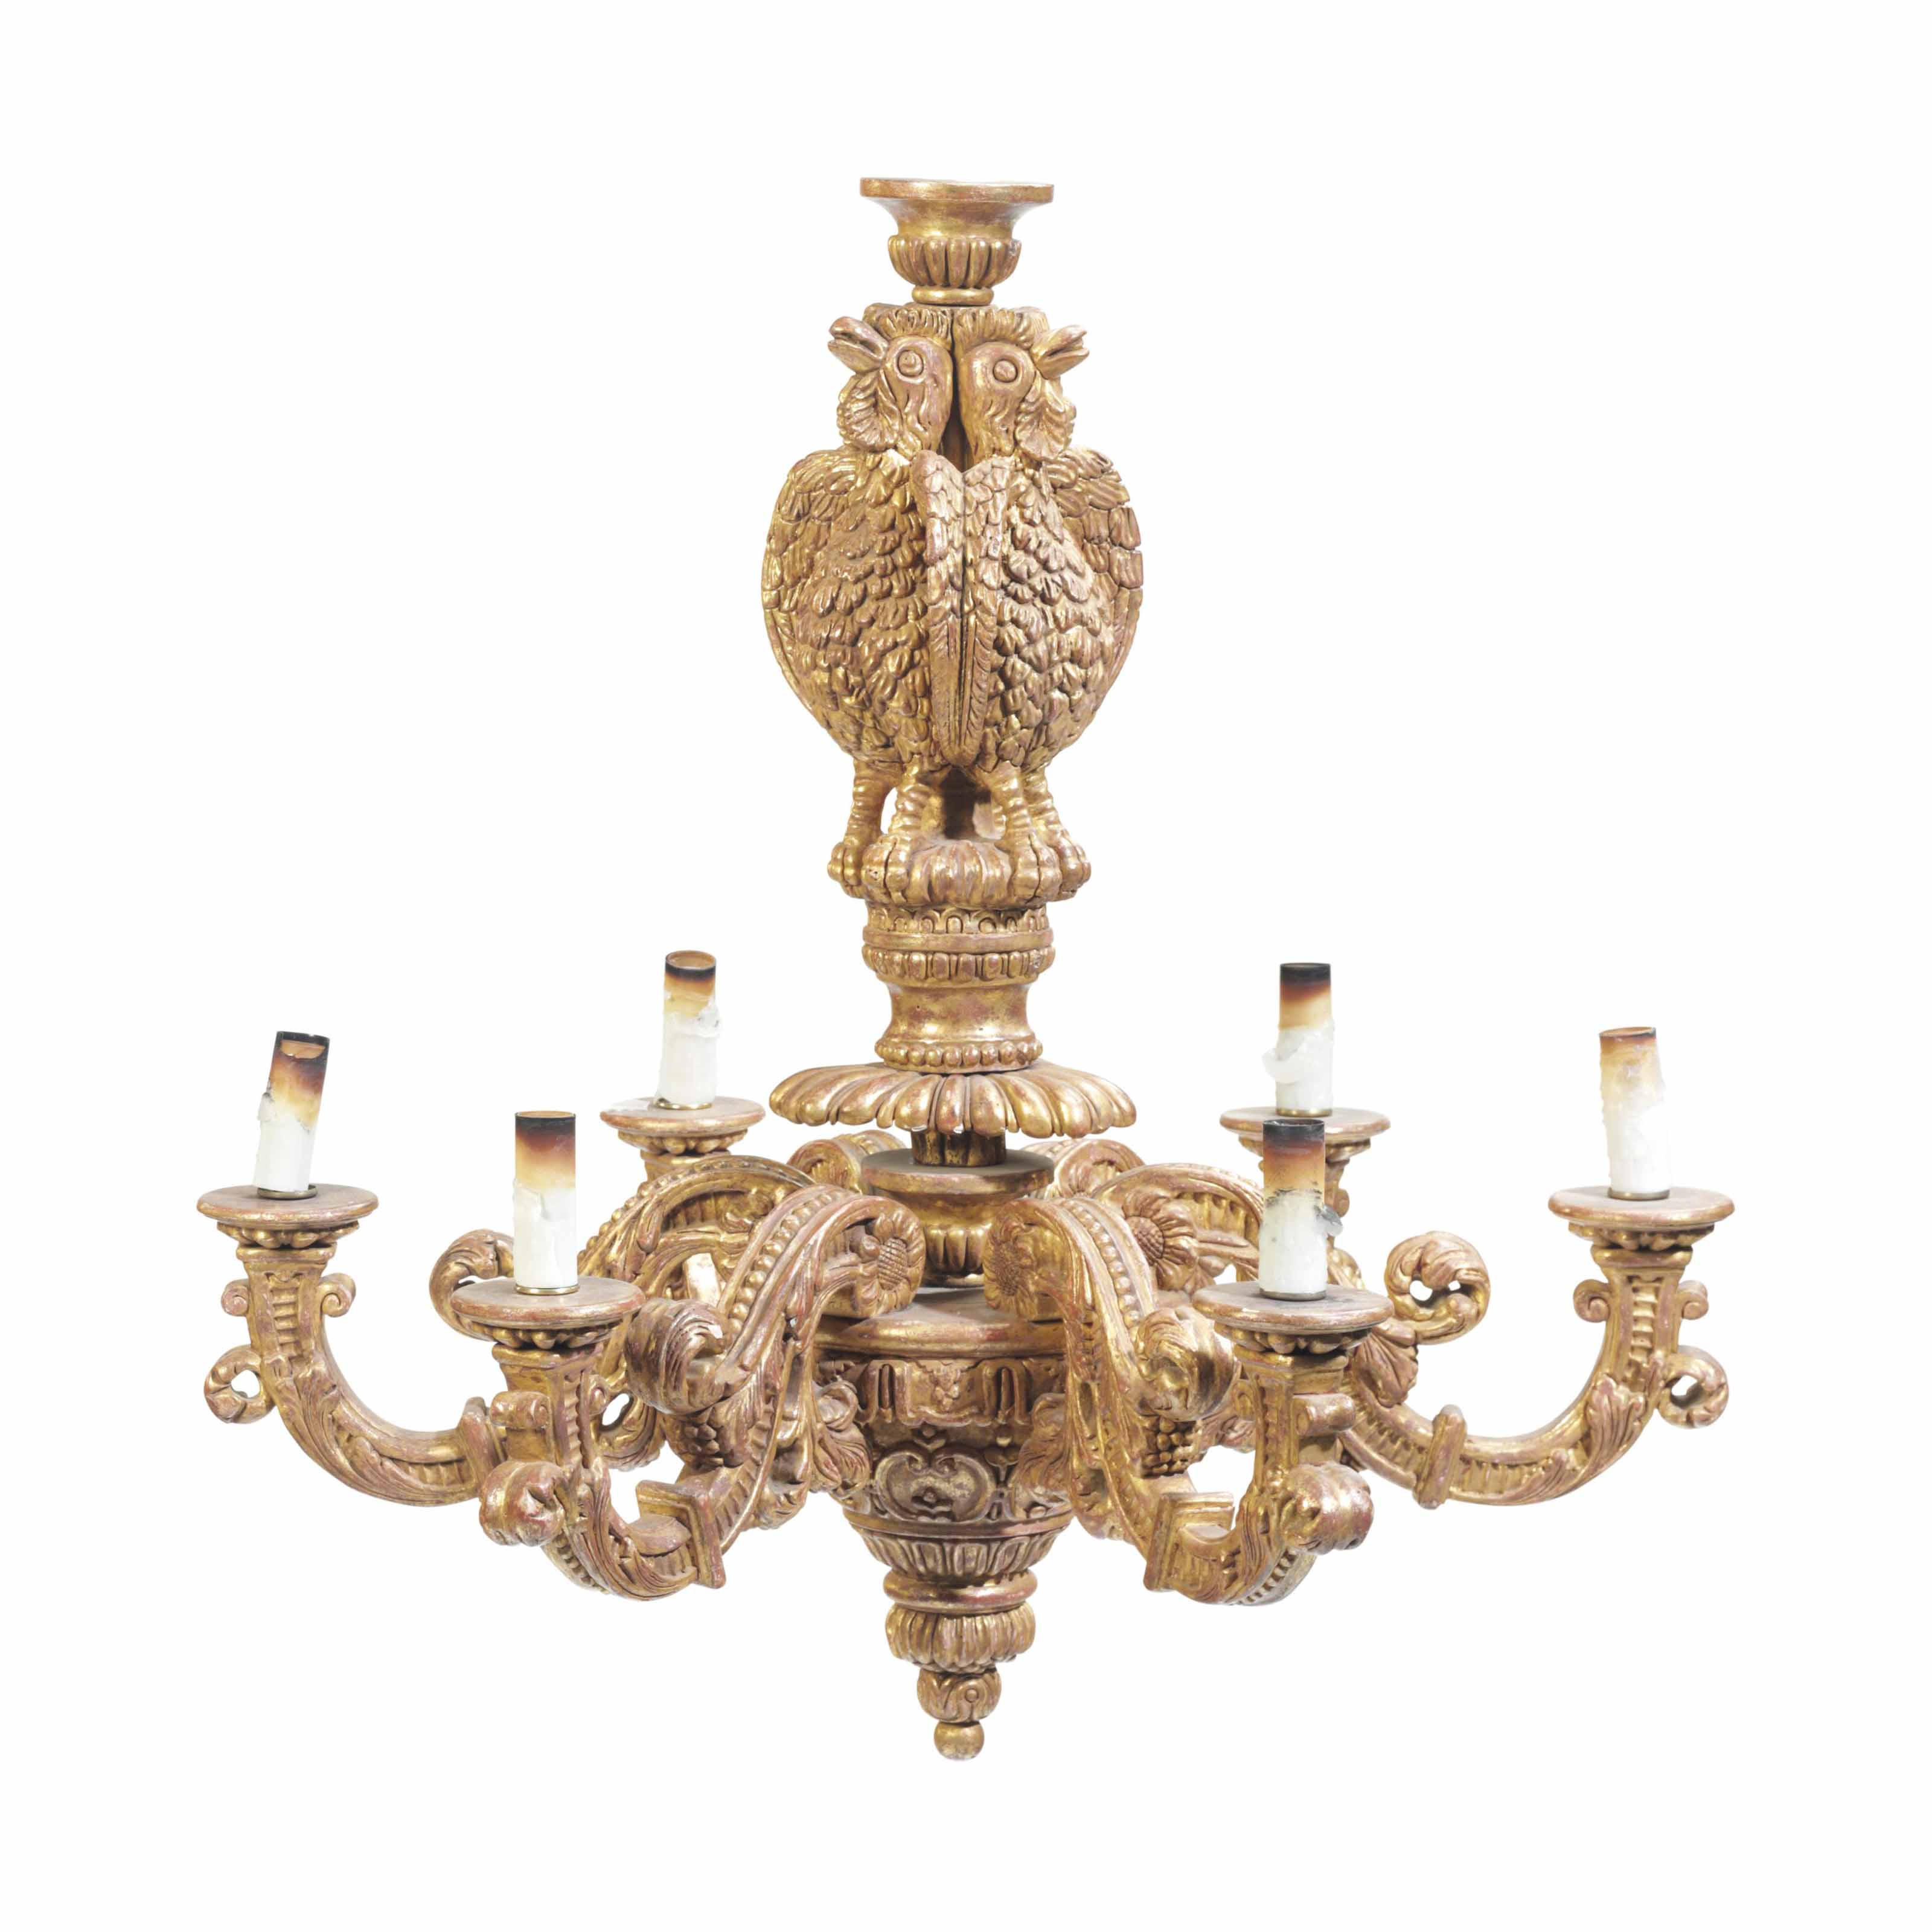 A BAROQUE STYLE GILTWOOD SIX-L